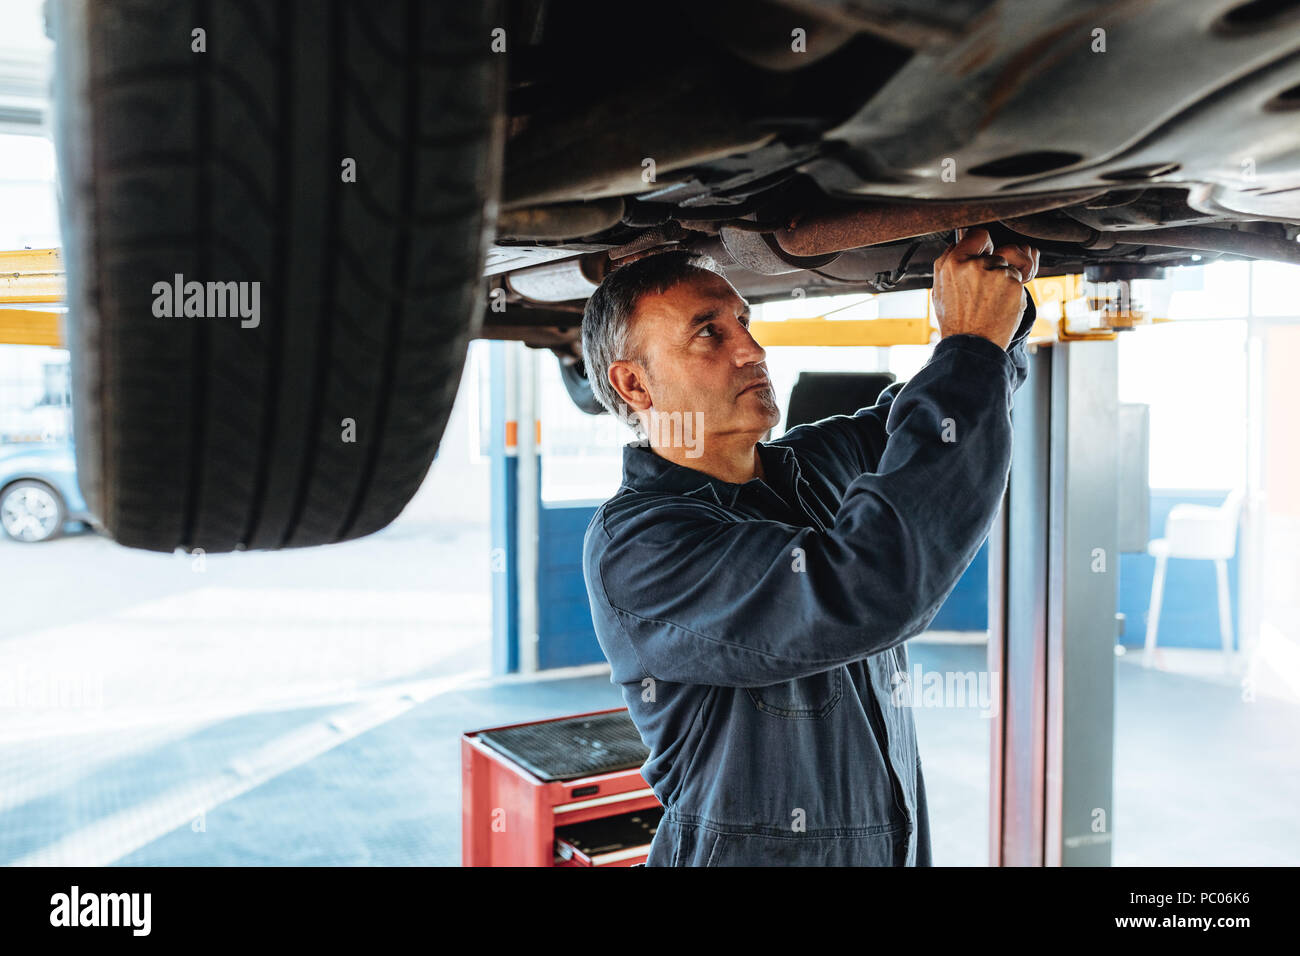 Car mechanic working on a lifted automobile at service station. Experienced repair man working in his garage. - Stock Image